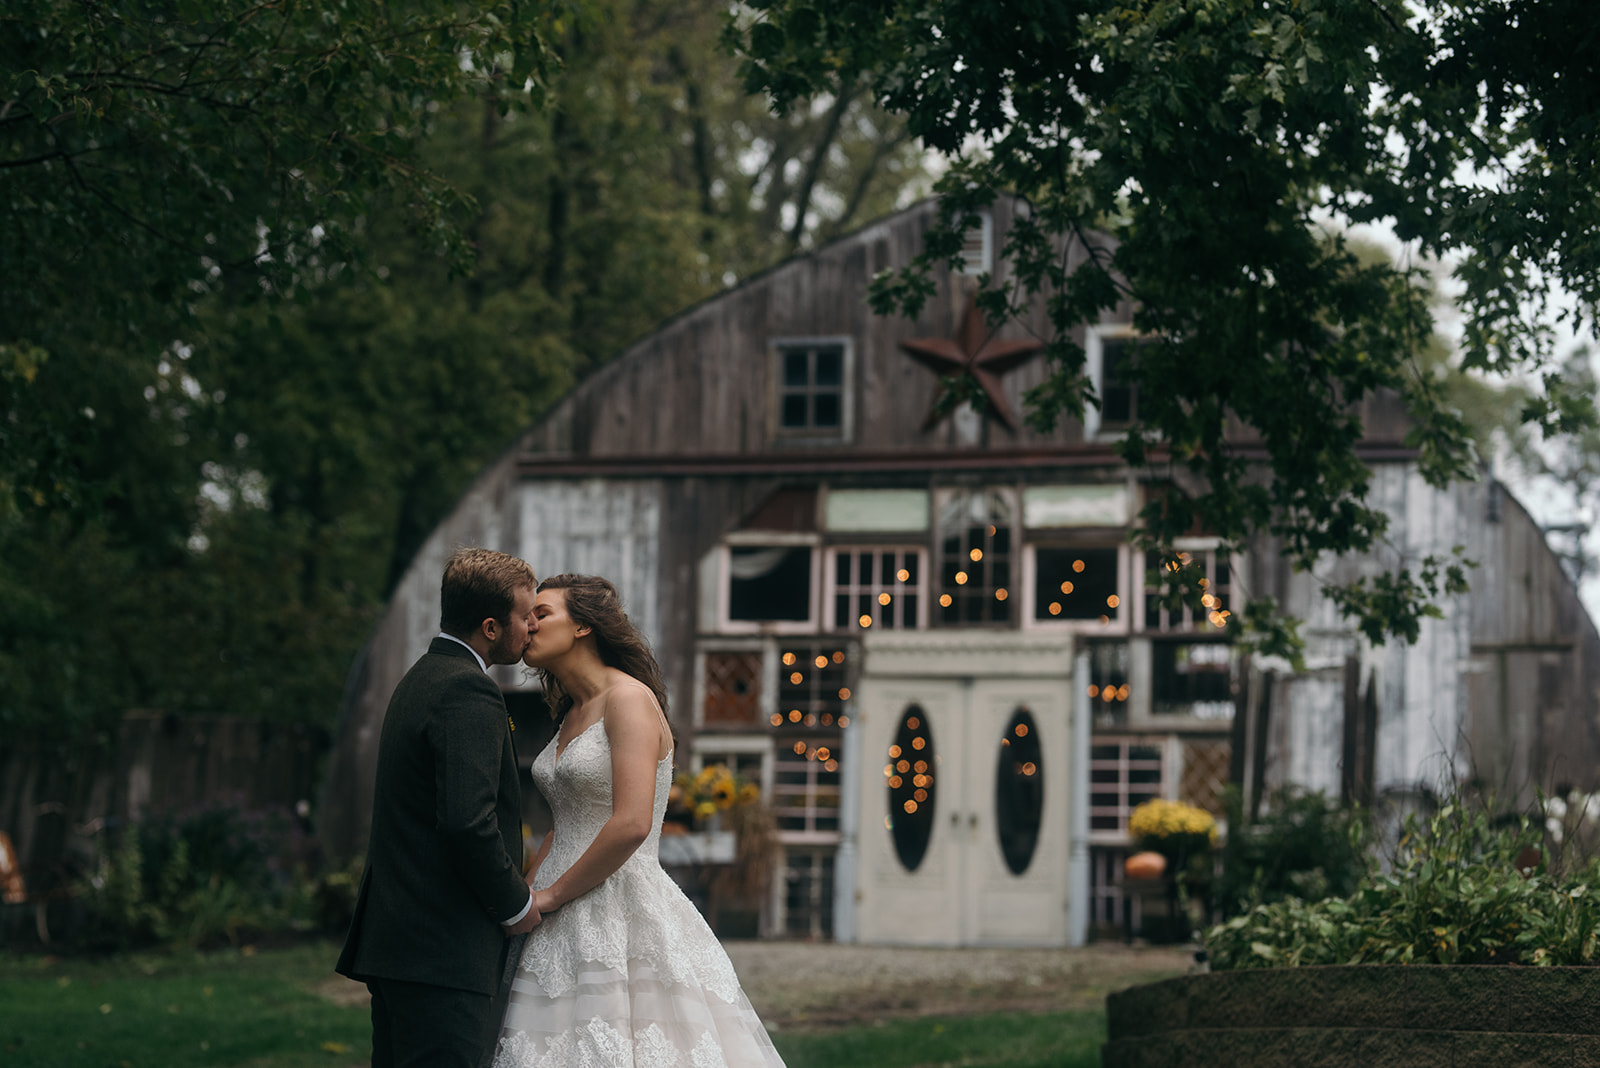 bride and groom kissing outside the barn wedding venue